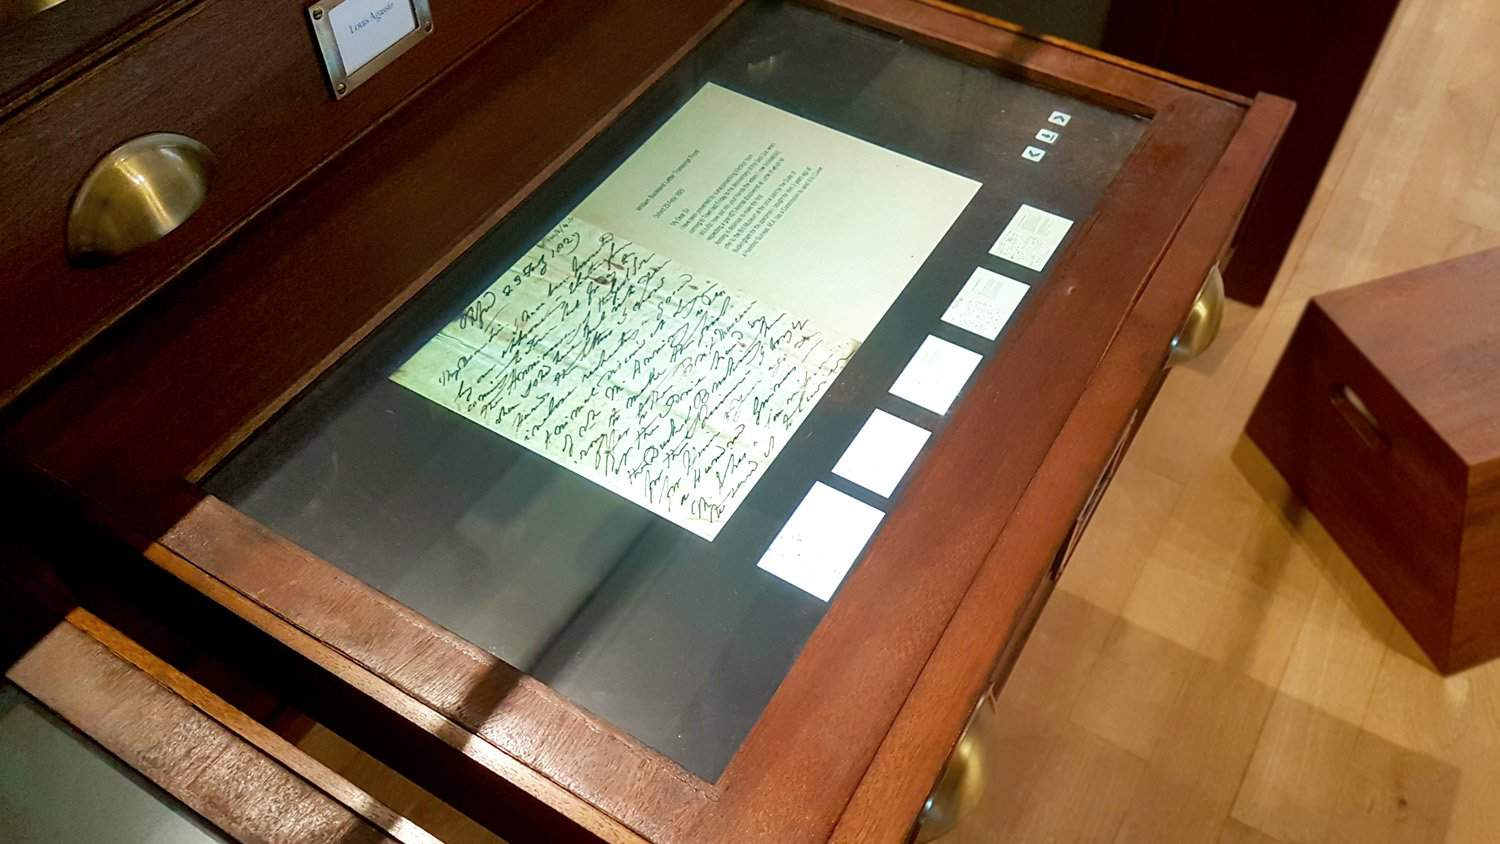 Letters from Mary Anning on 22 Inch All-in-One Touchscreen at Lyme Regis Museum